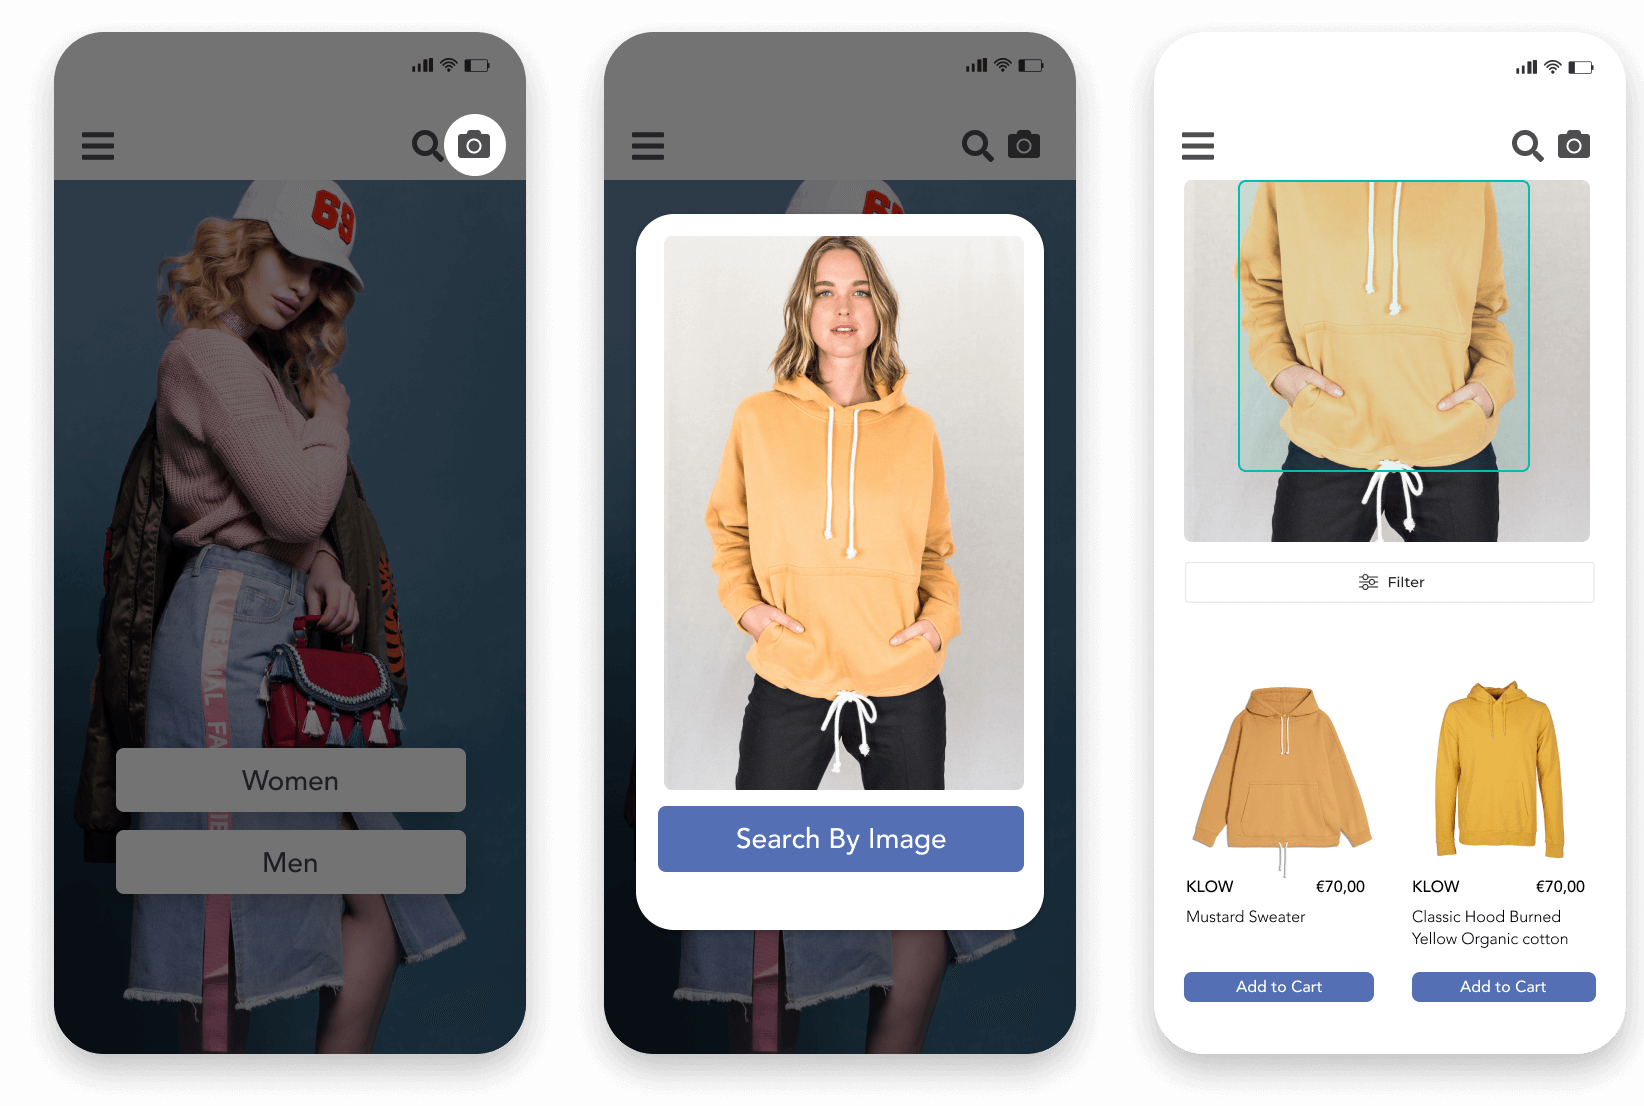 Pixyle's visual search showing best matched dresses and sunglasses to the uploaded image